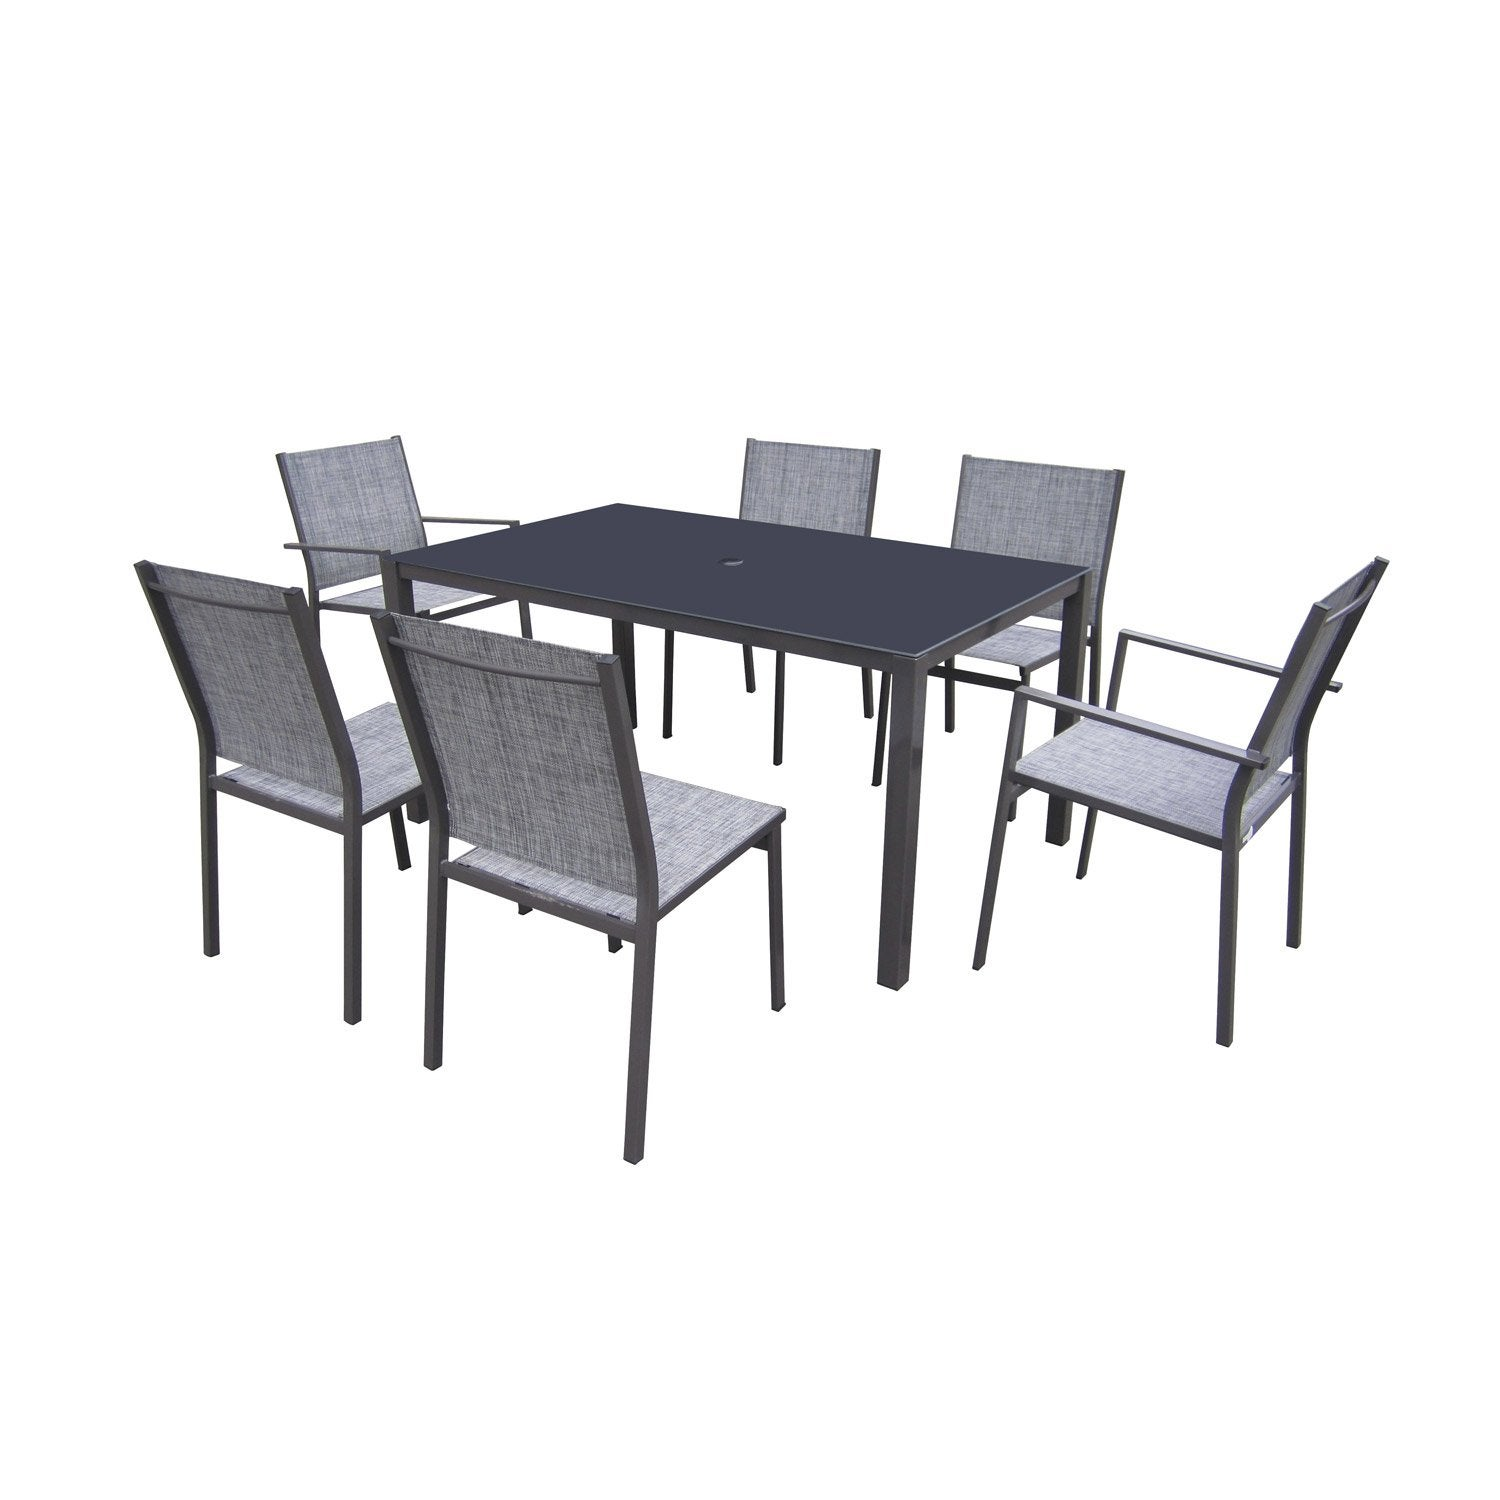 Salon de jardin denver acier gris anthracite 1 table 4 for Leroy merlin table jardin